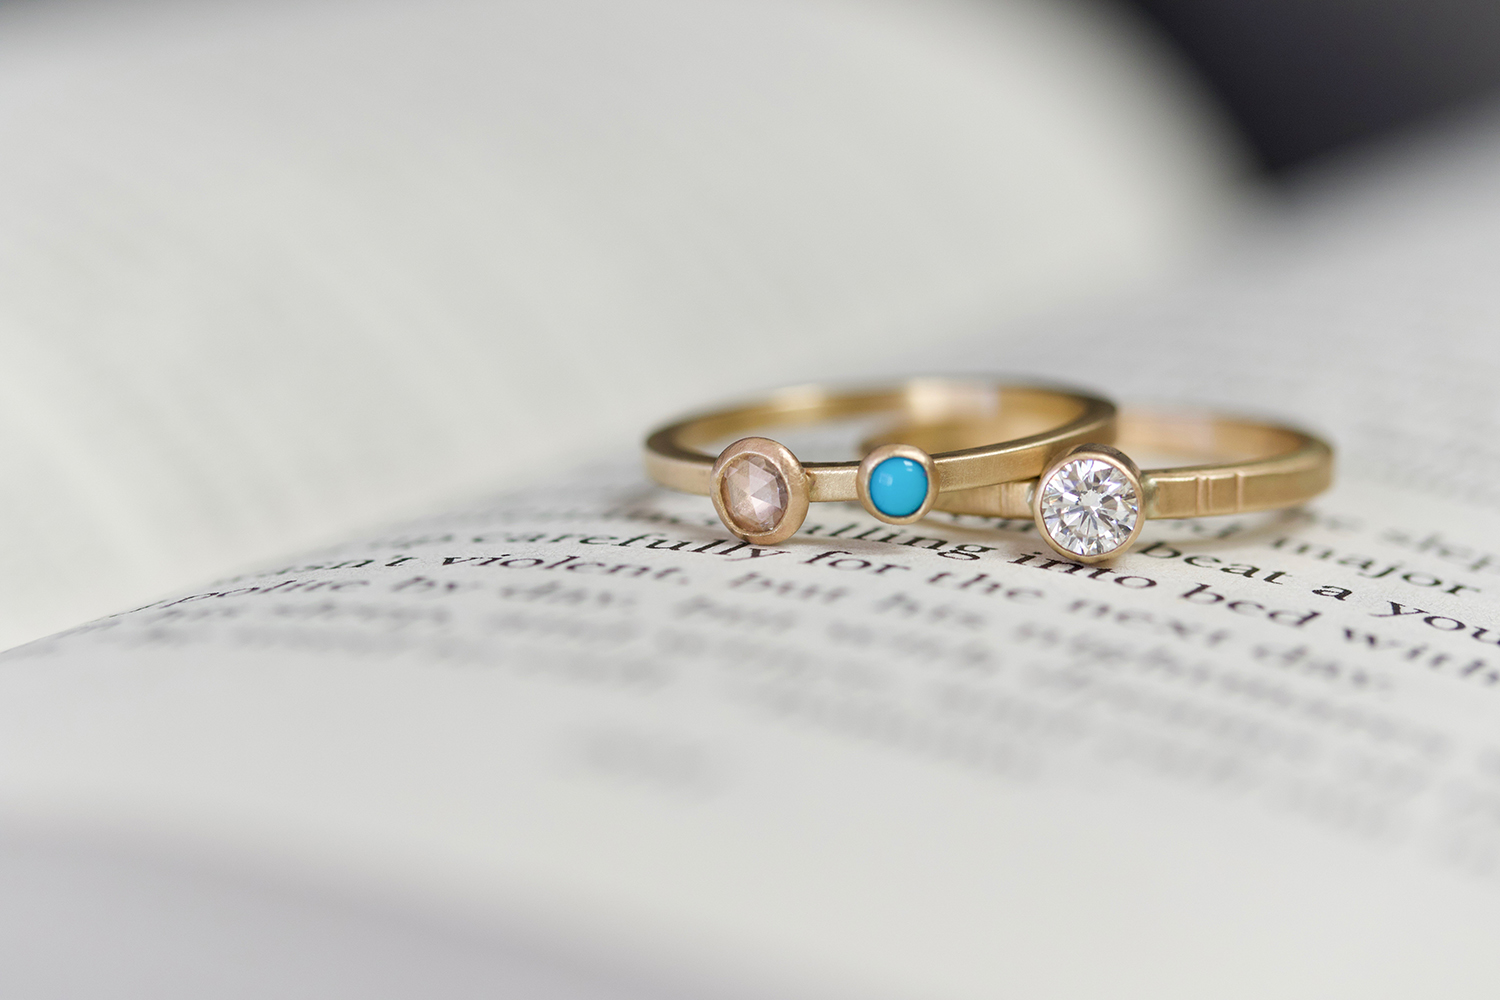 georgia and diamond granite rings on book small.jpg